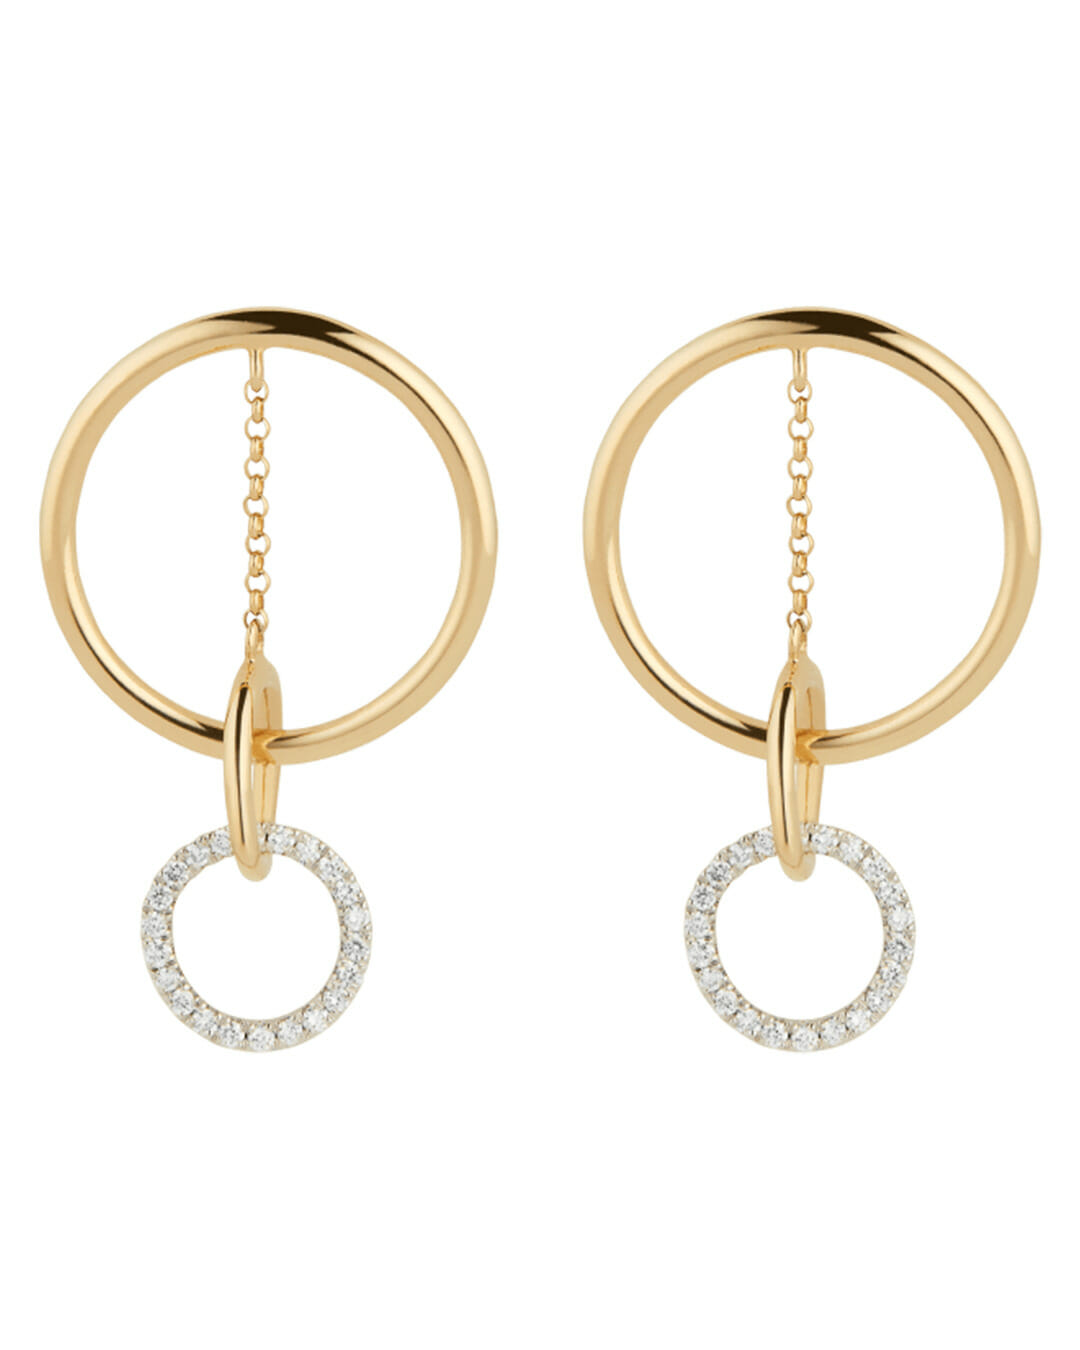 G. Label Jewelry Collection Earrings